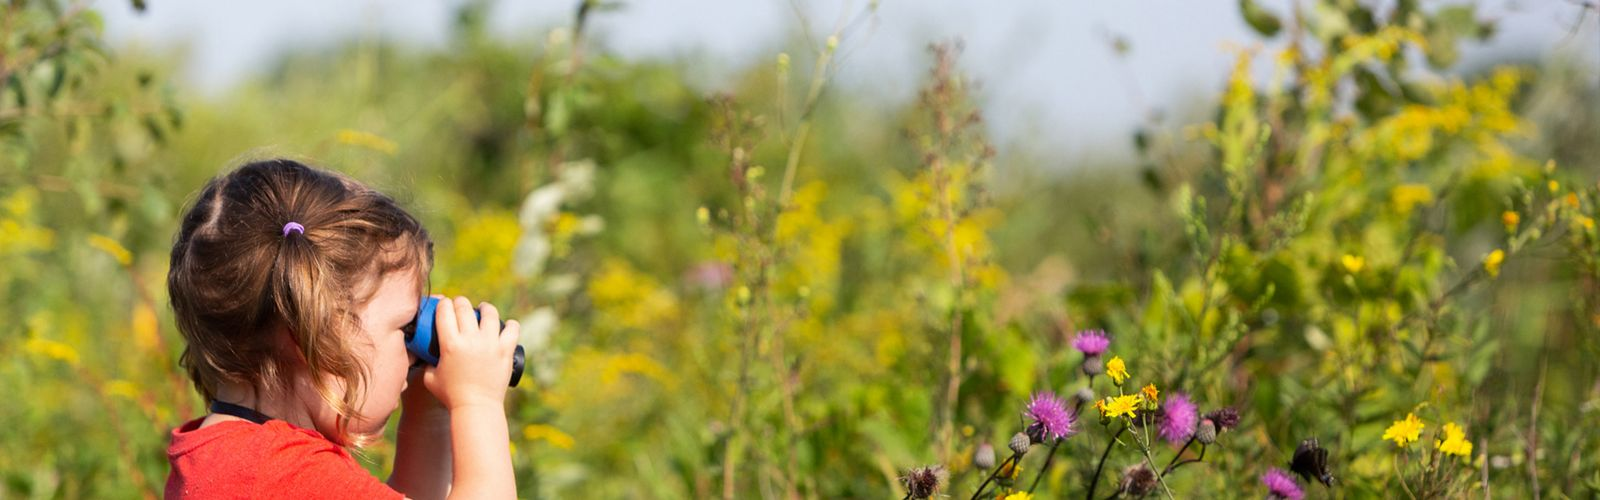 Young girl in pigtails wearing a red shirt hold a pair of blue binoculars up to her eyes to look at yellow and purple flowers in a prairie.